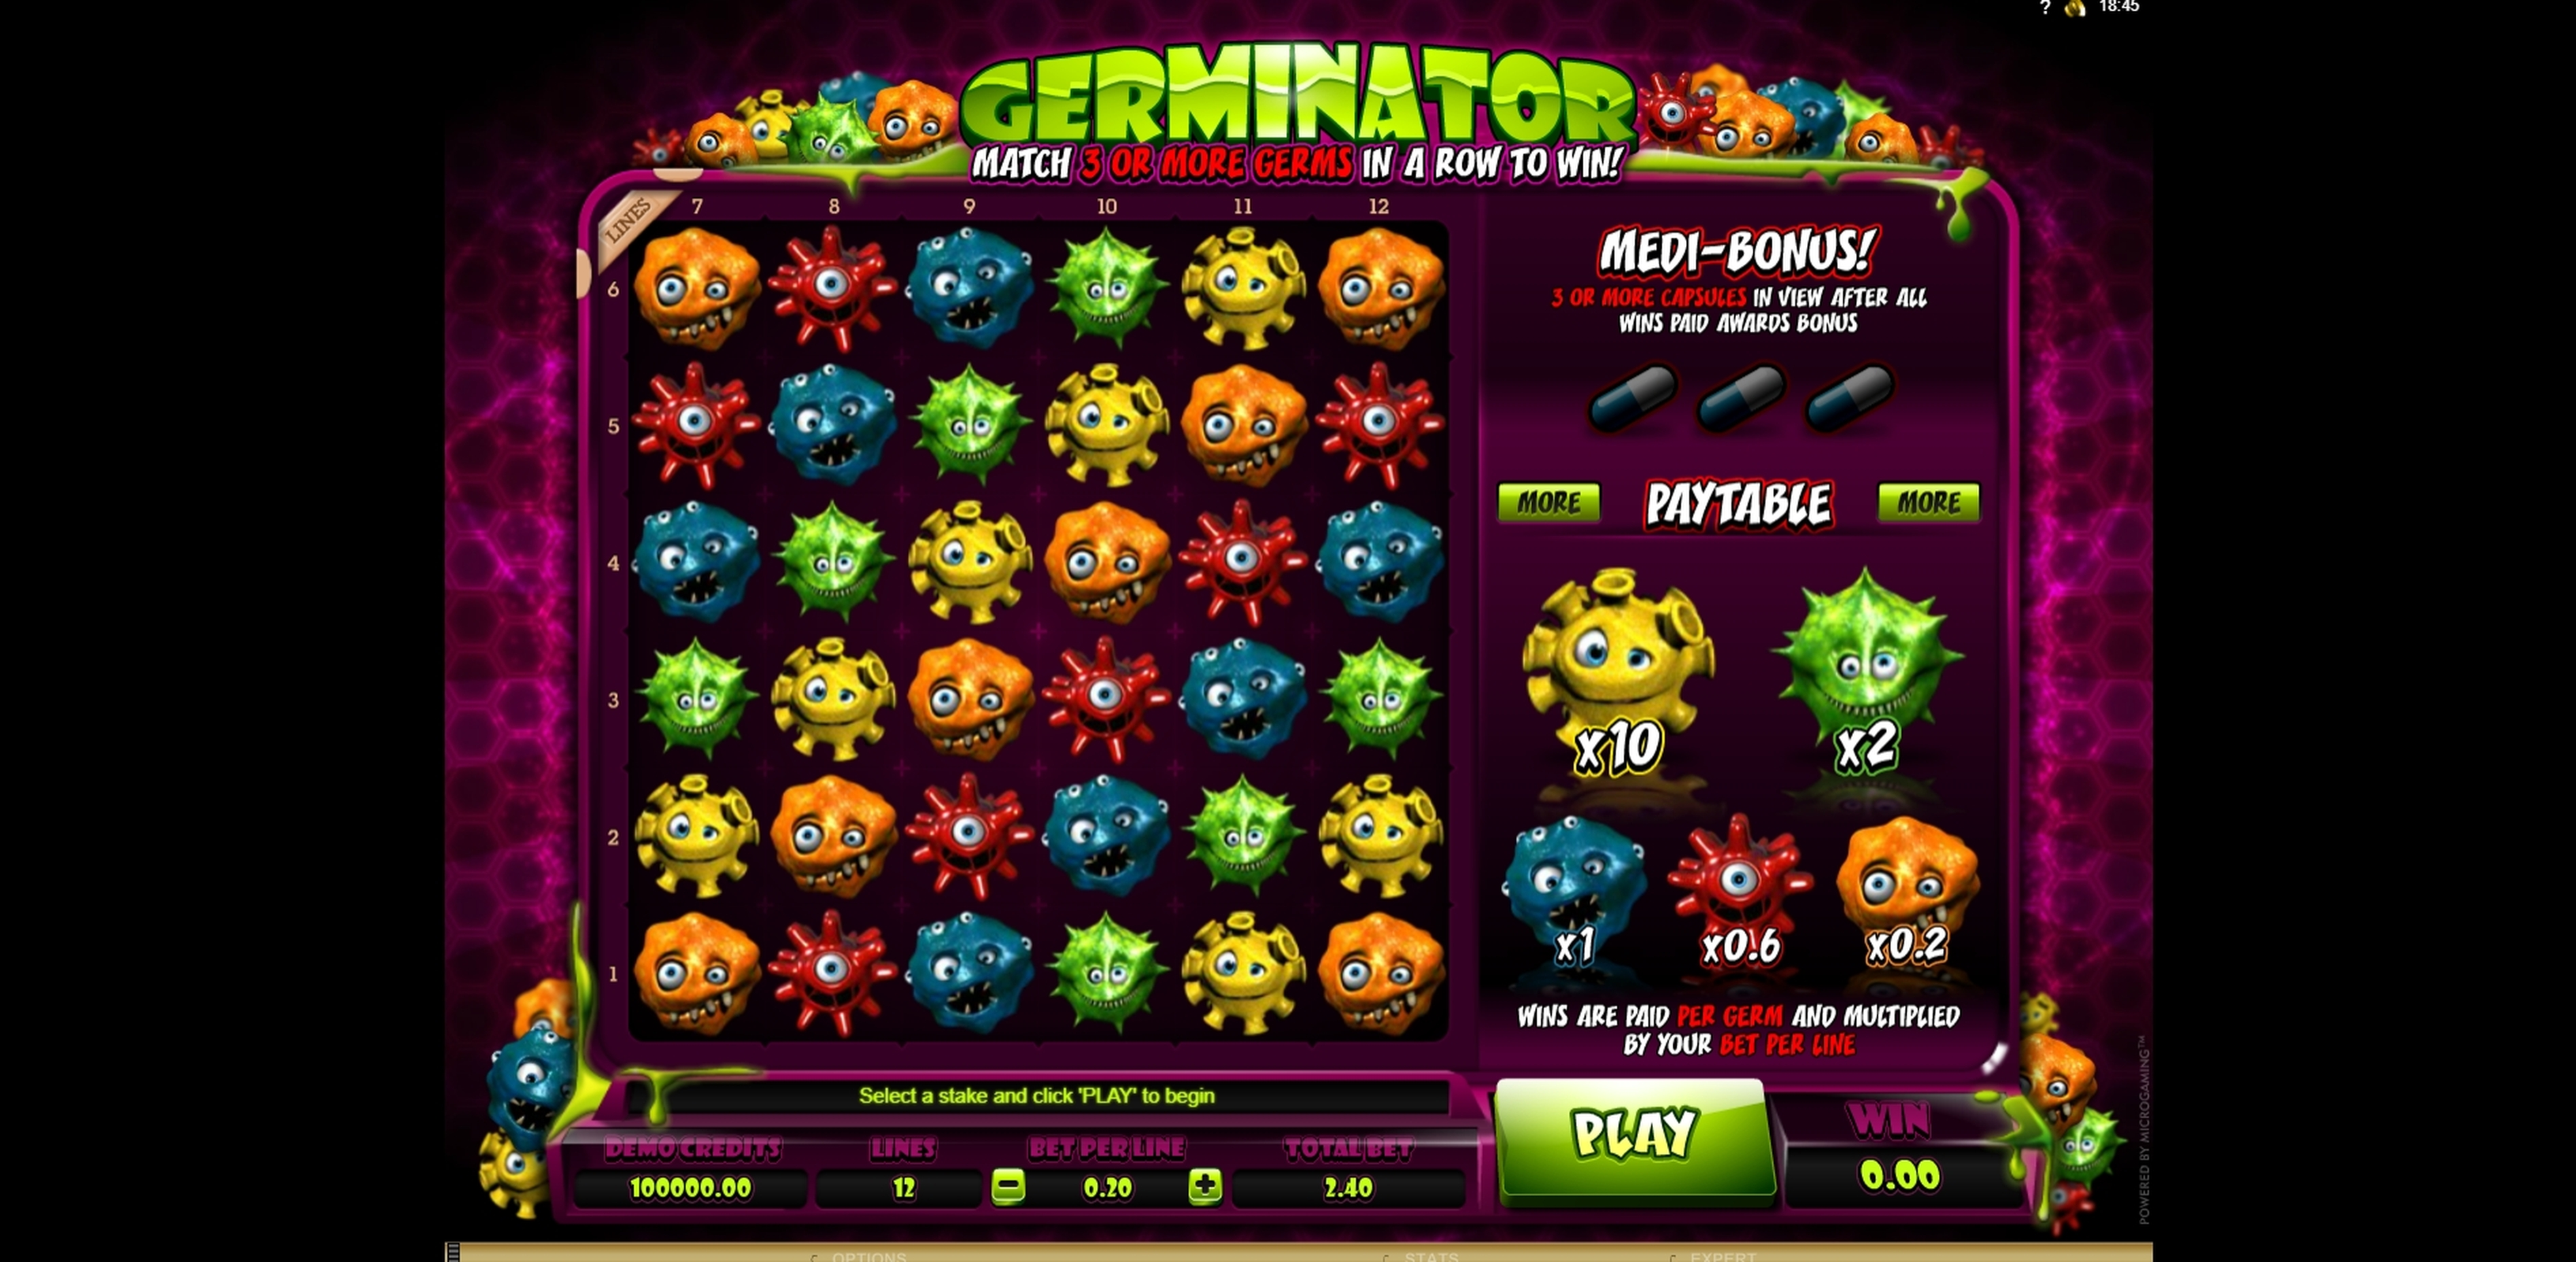 Reels in Germinator Slot Game by Microgaming